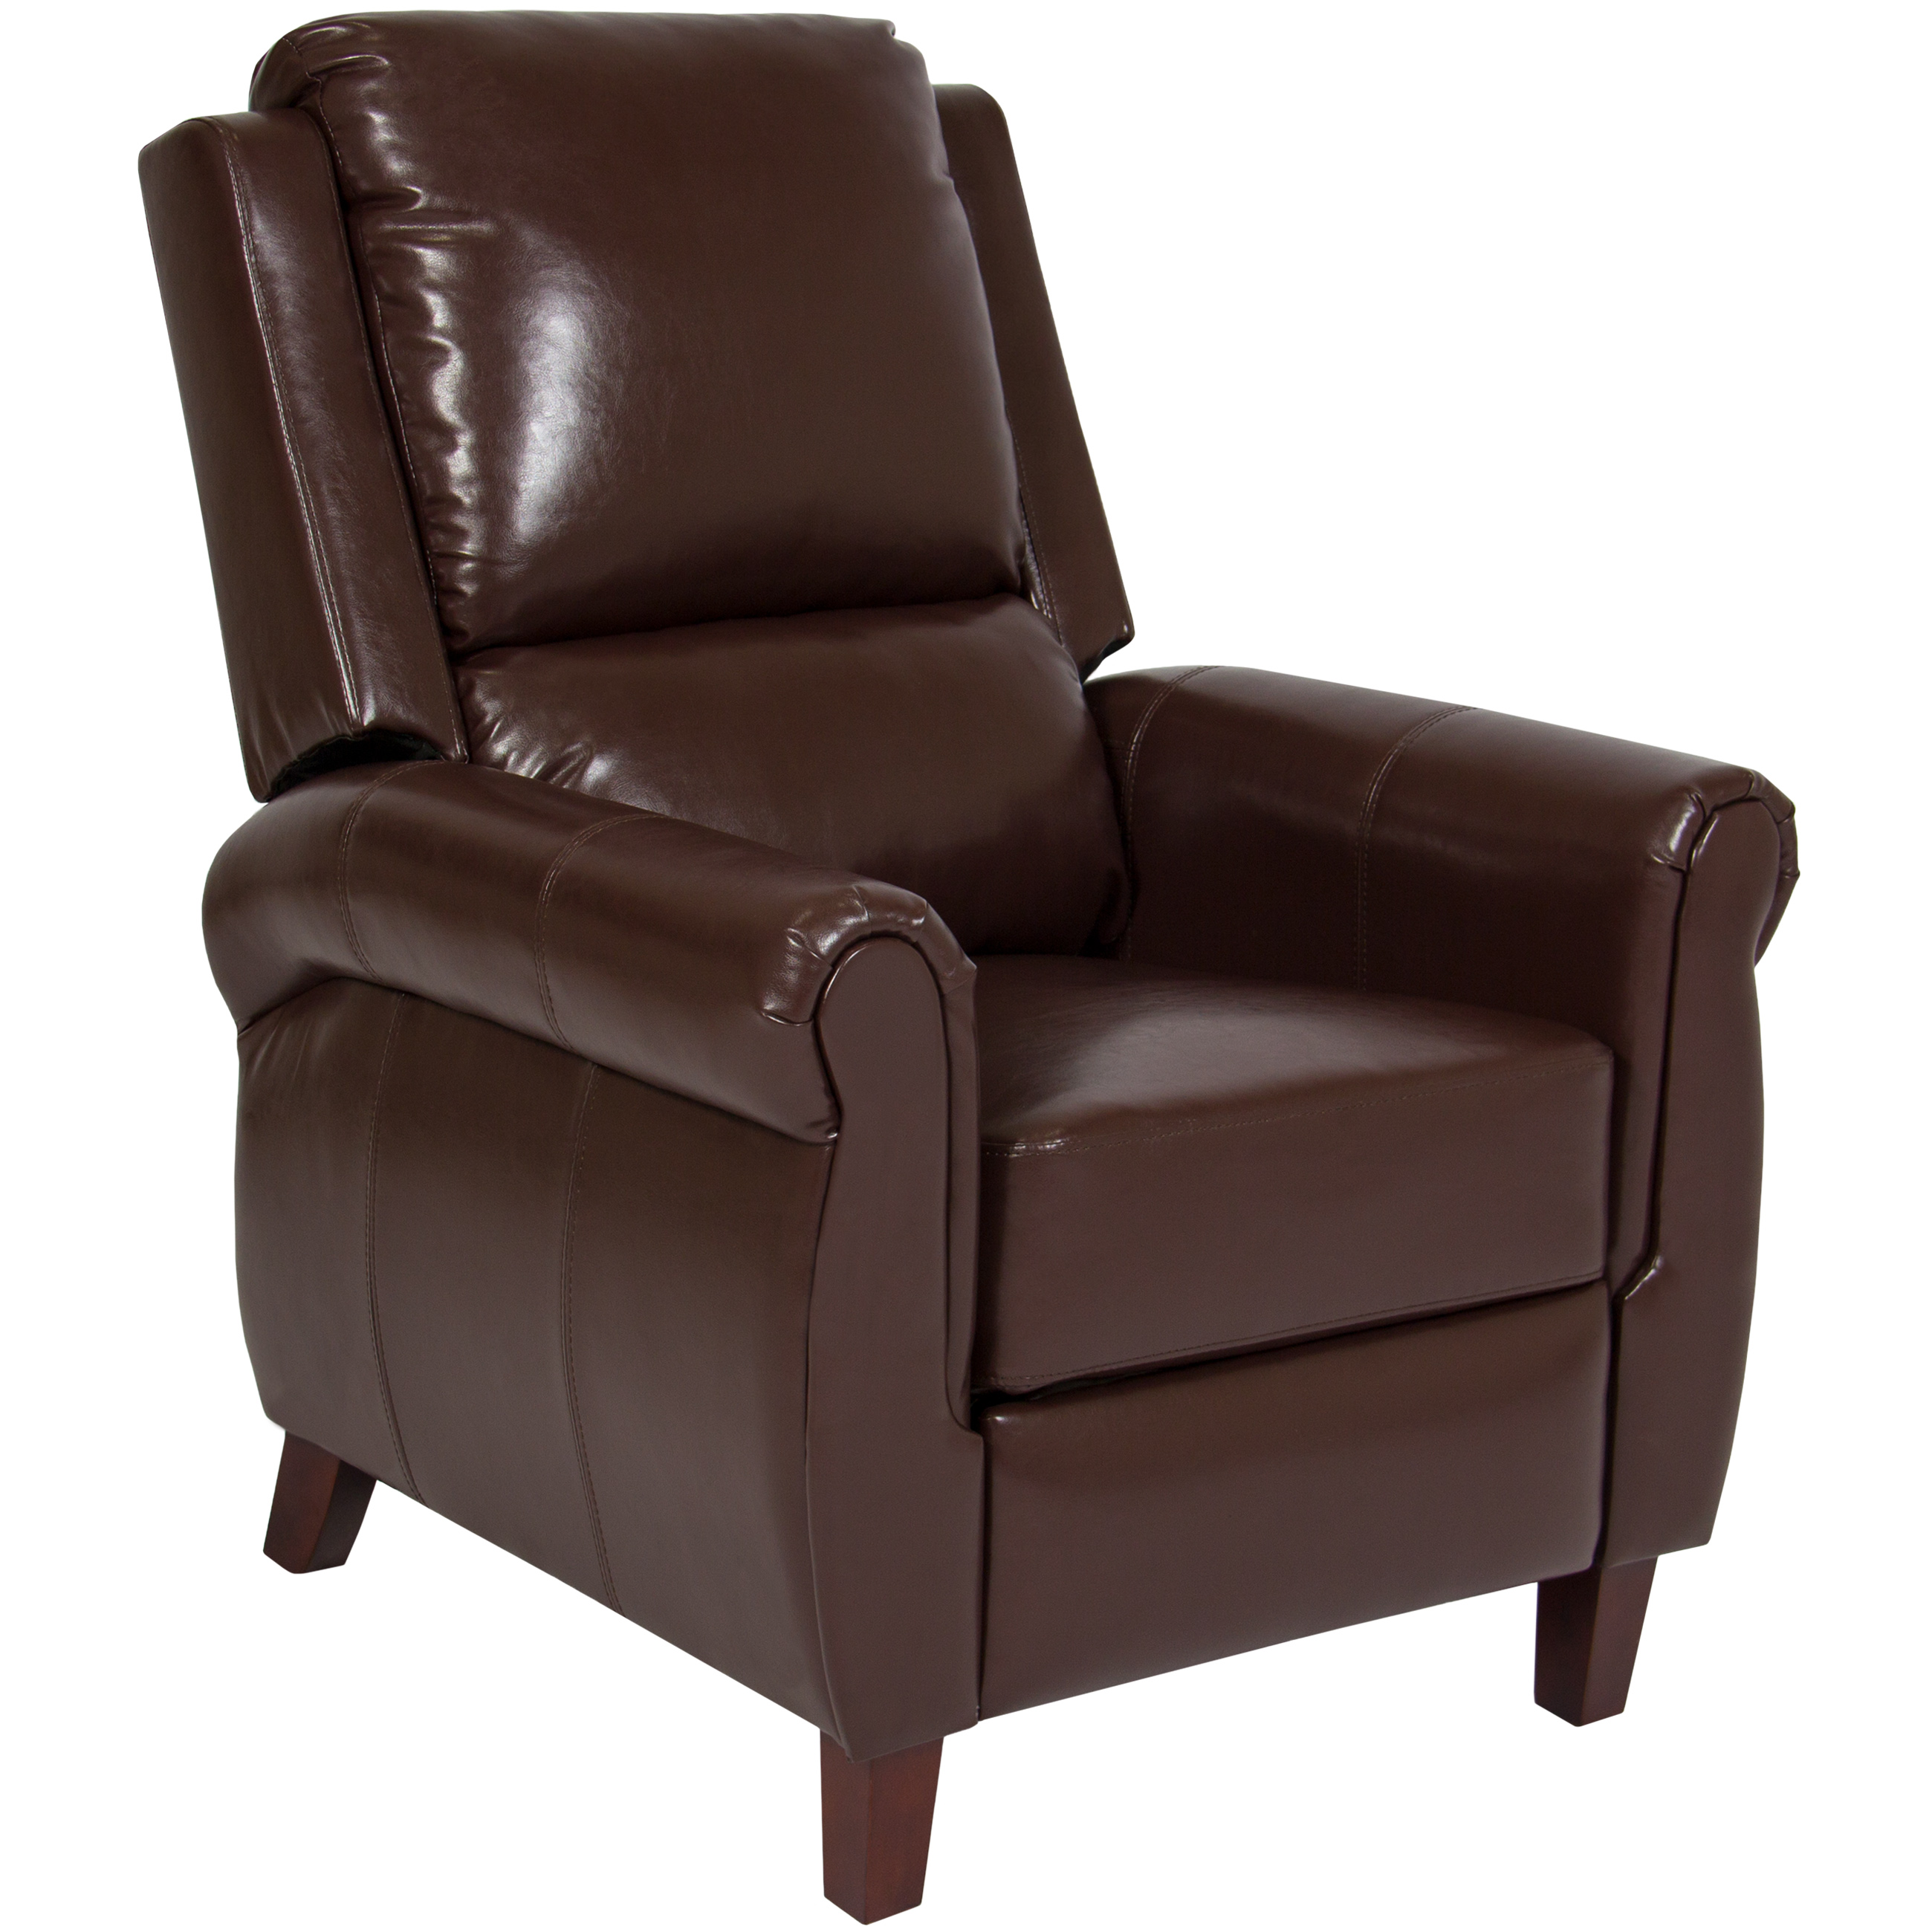 Best Choice Products Deluxe Leather Home Theater Recliner Chair W/ Wood  Legs (Brown)